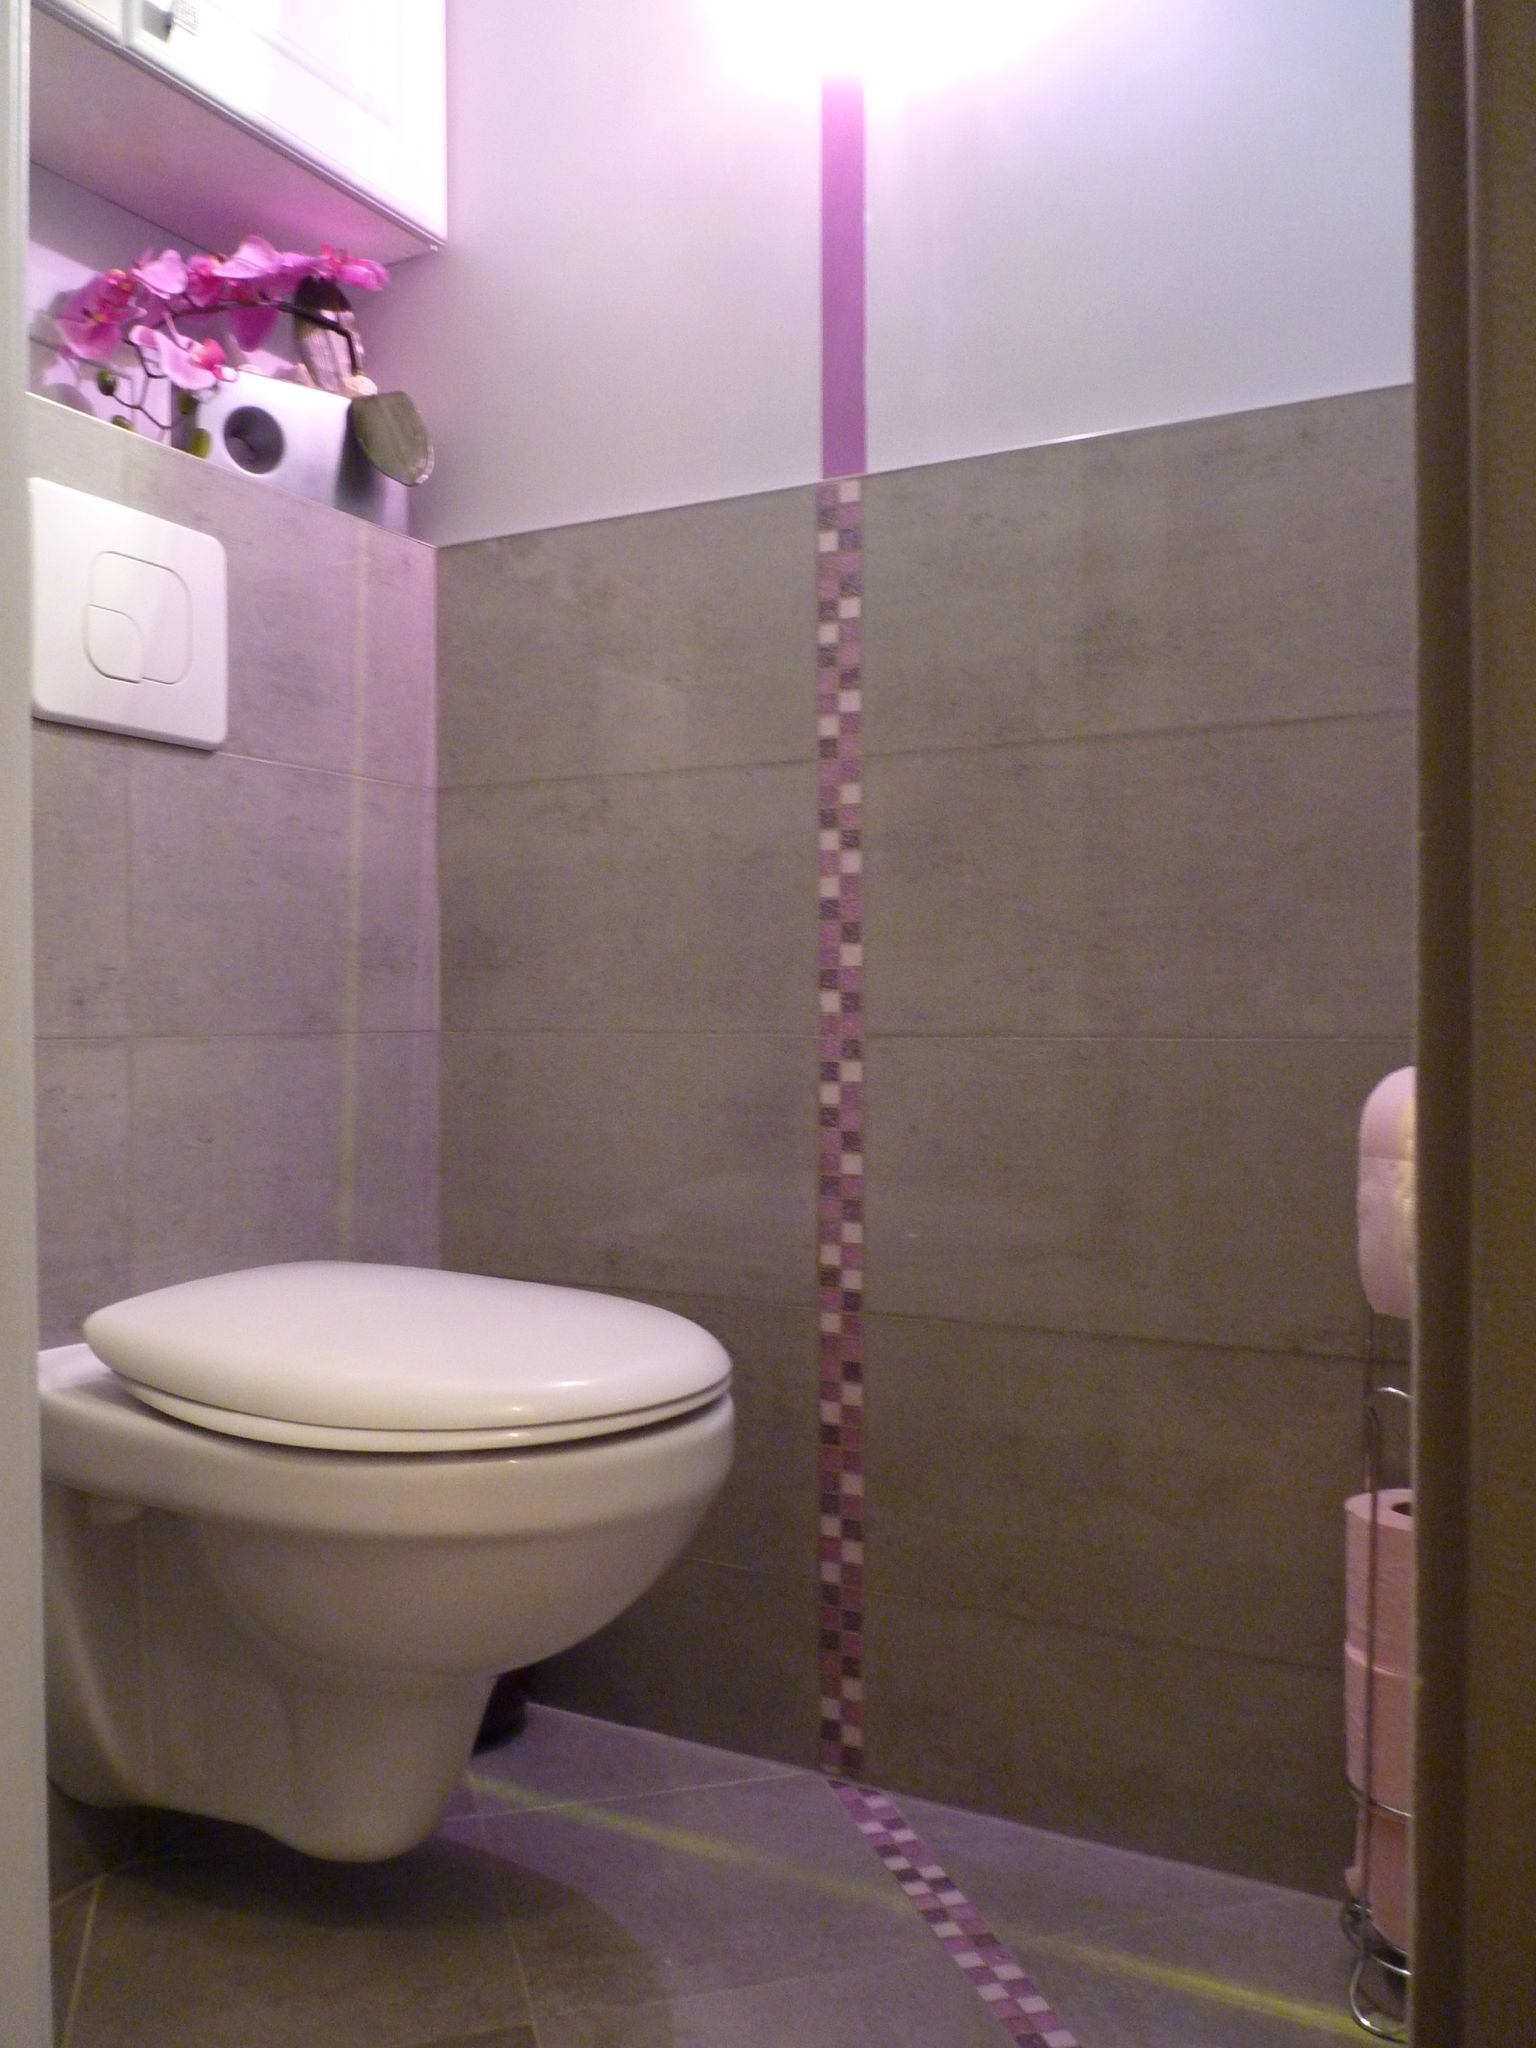 Carrelage wc moderne - Idee decoration toilette ...